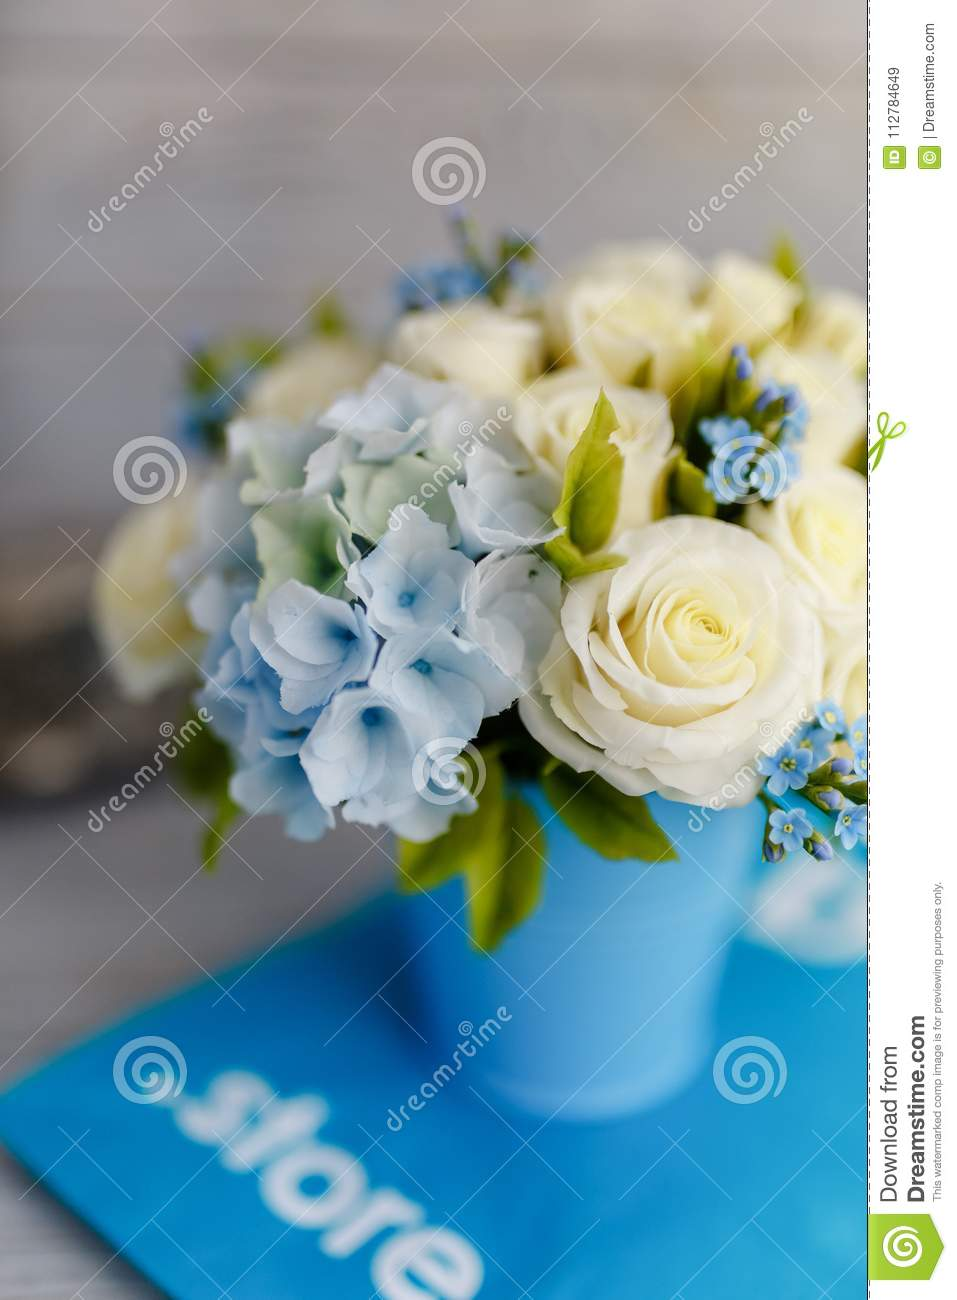 Blue and white wedding flowers stock image image of bottles download blue and white wedding flowers stock image image of bottles candy izmirmasajfo